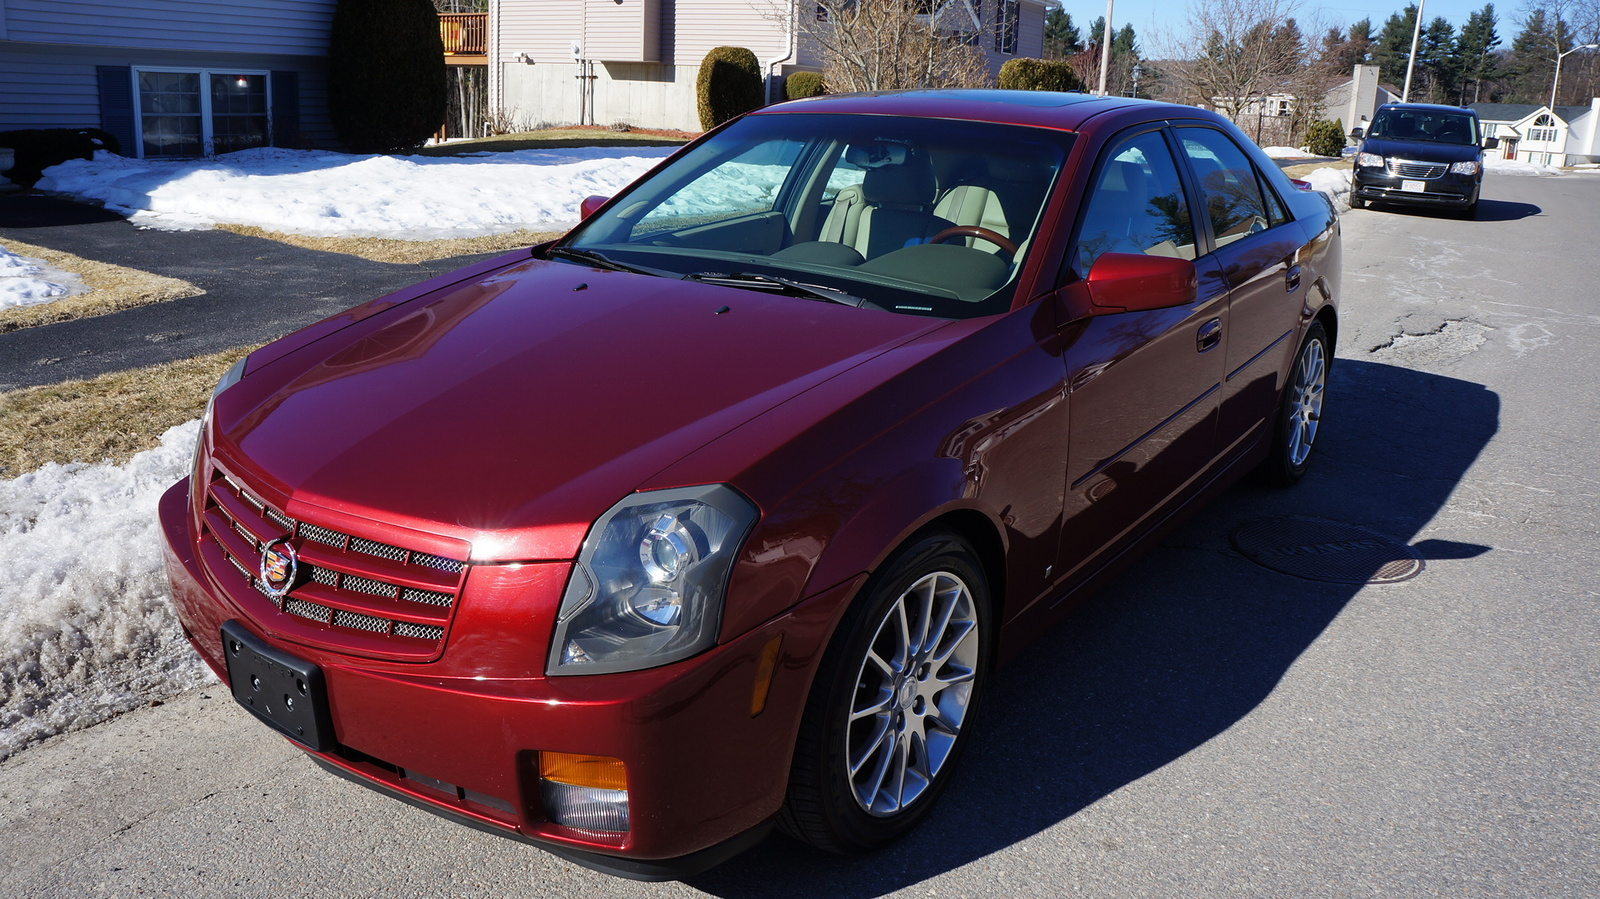 2006 Cadillac Cts - Pictures